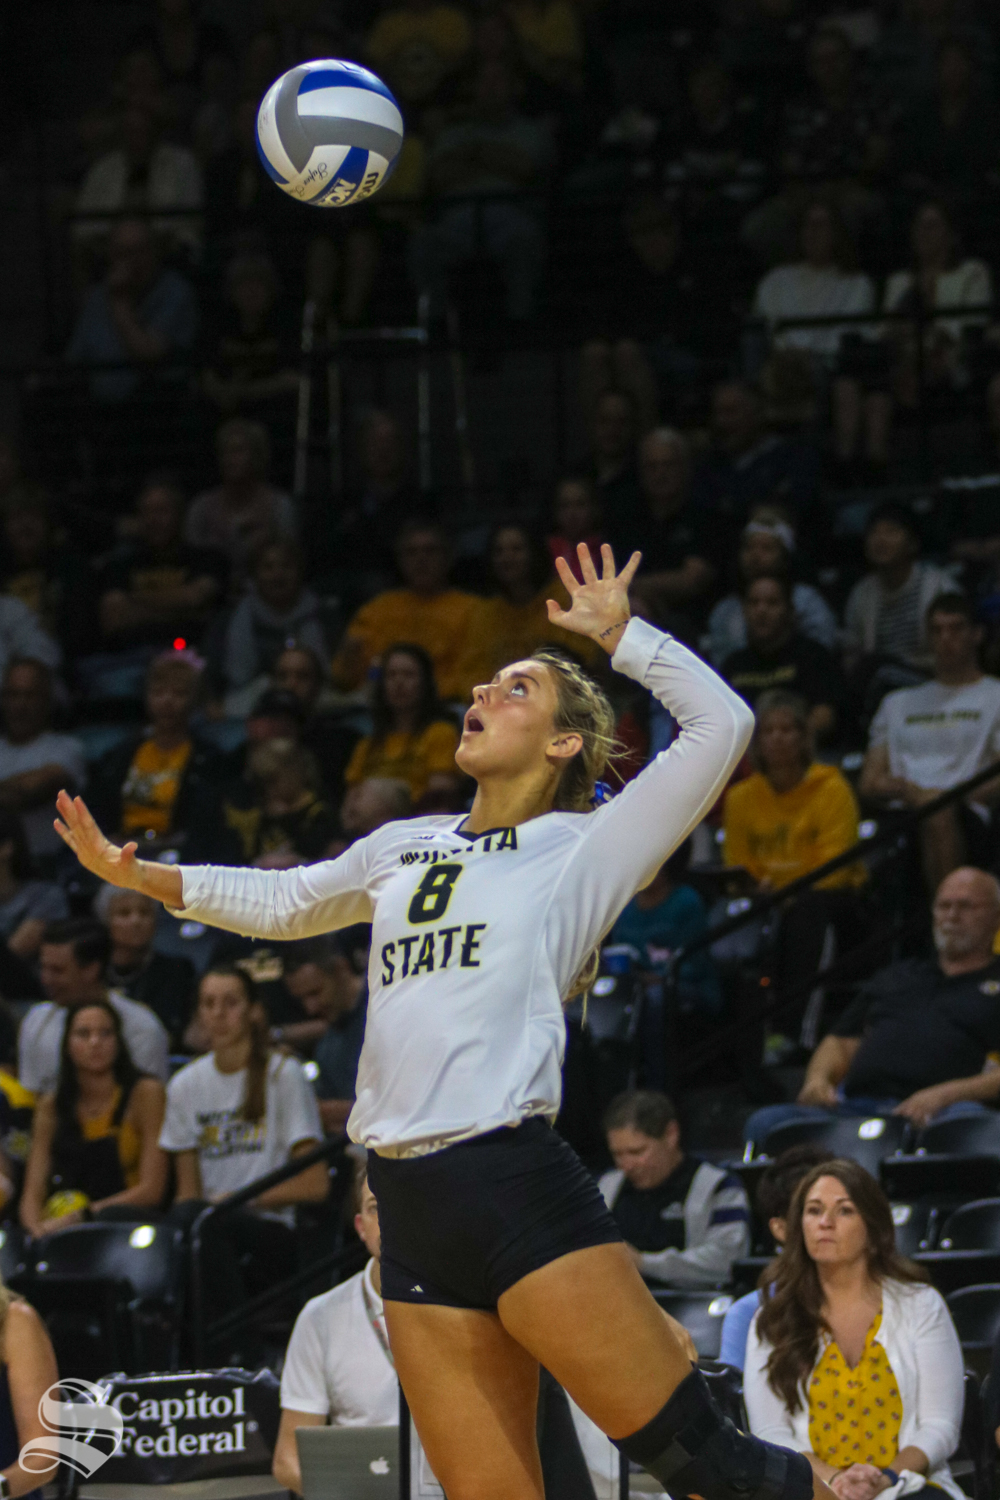 Wichita+State%27s+Kali+Eaken+serves+the+ball+to+Tulane+during+their+game+on+Friday+evening+at+Koch+Arena.+%28Sept.+21%2C+2018%29